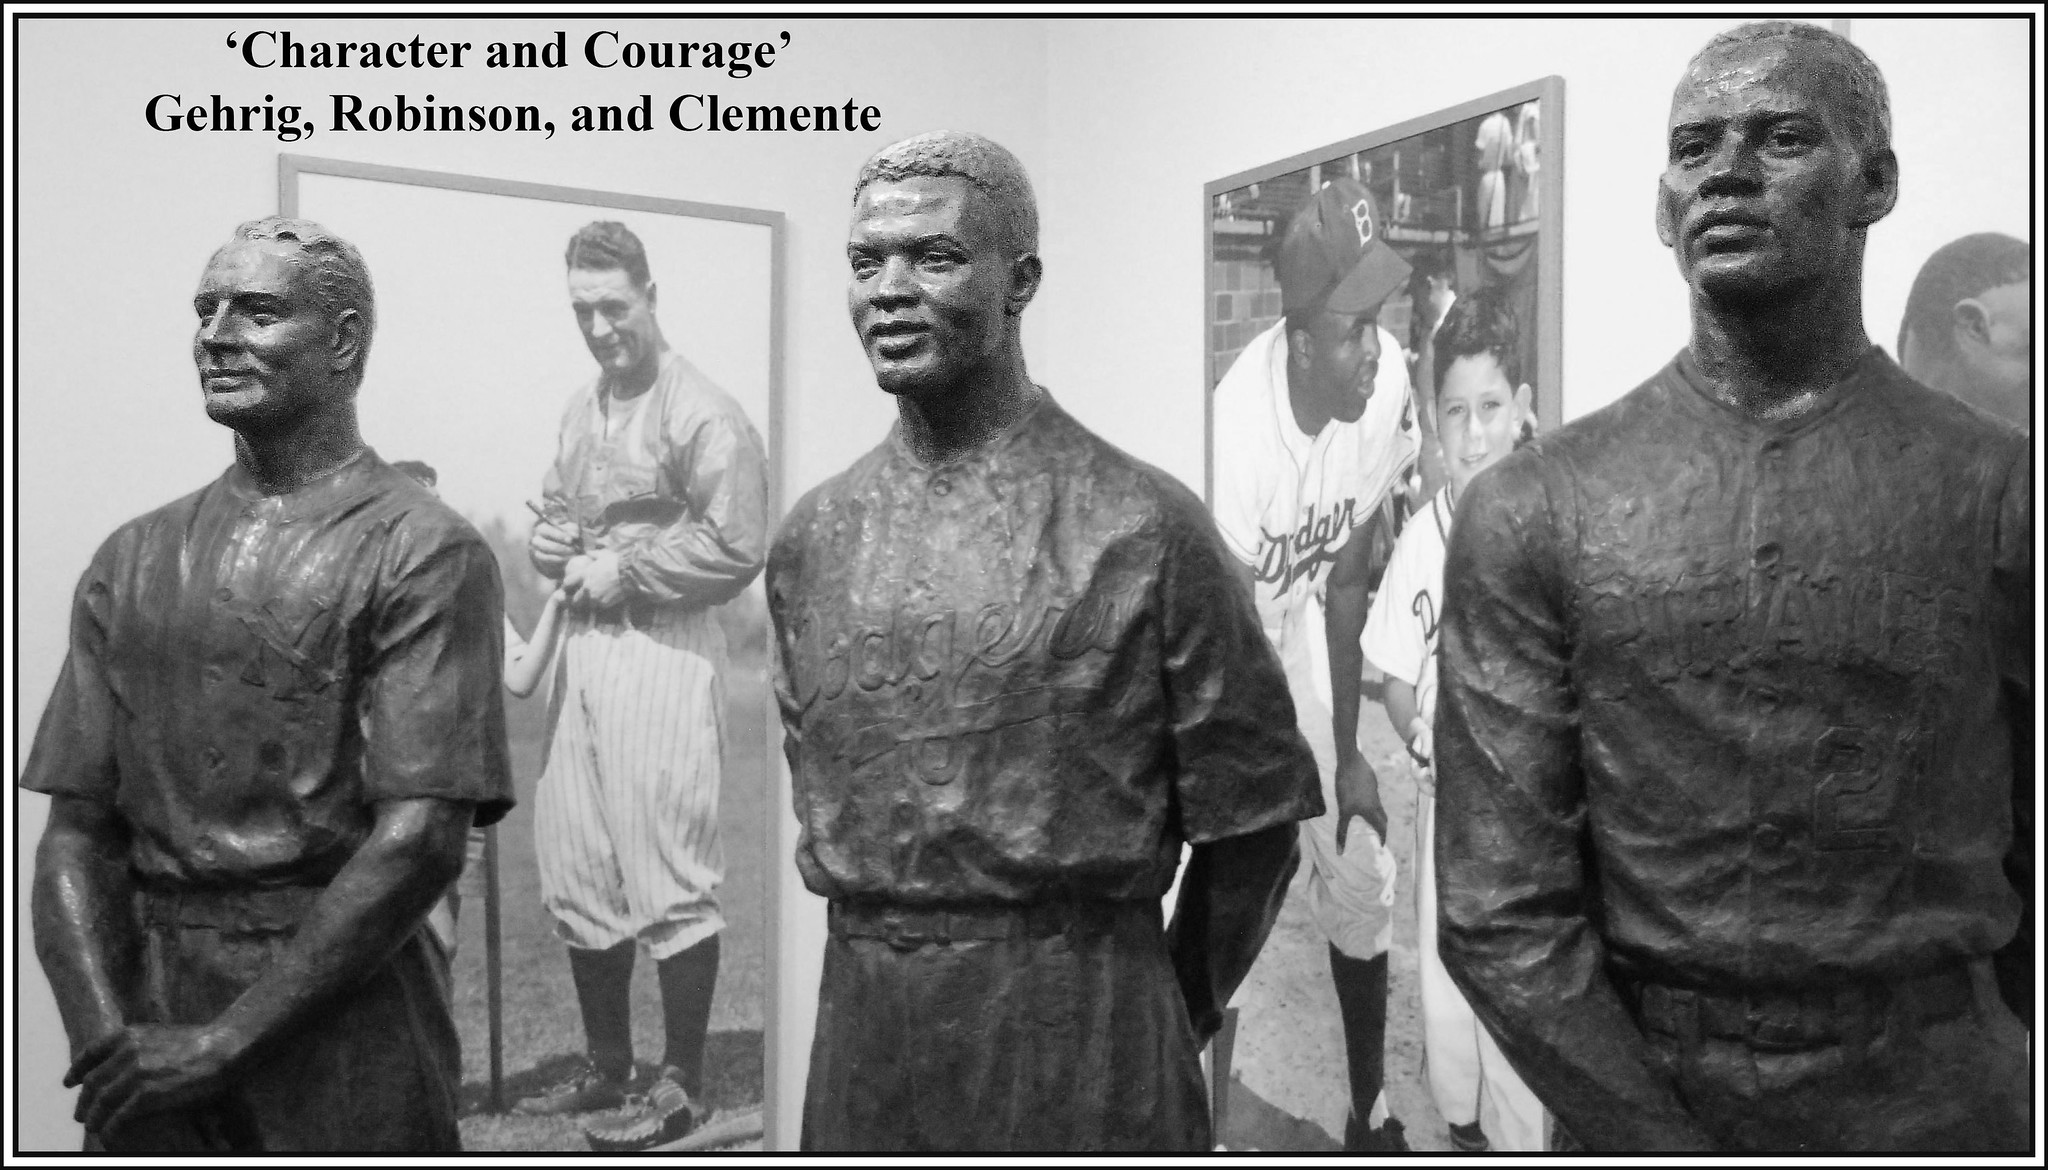 'Character and Courage' -- Gehrig, Robinson, and Clemente at the Baseball Hall of Fame Cooperstown (NY) 2016